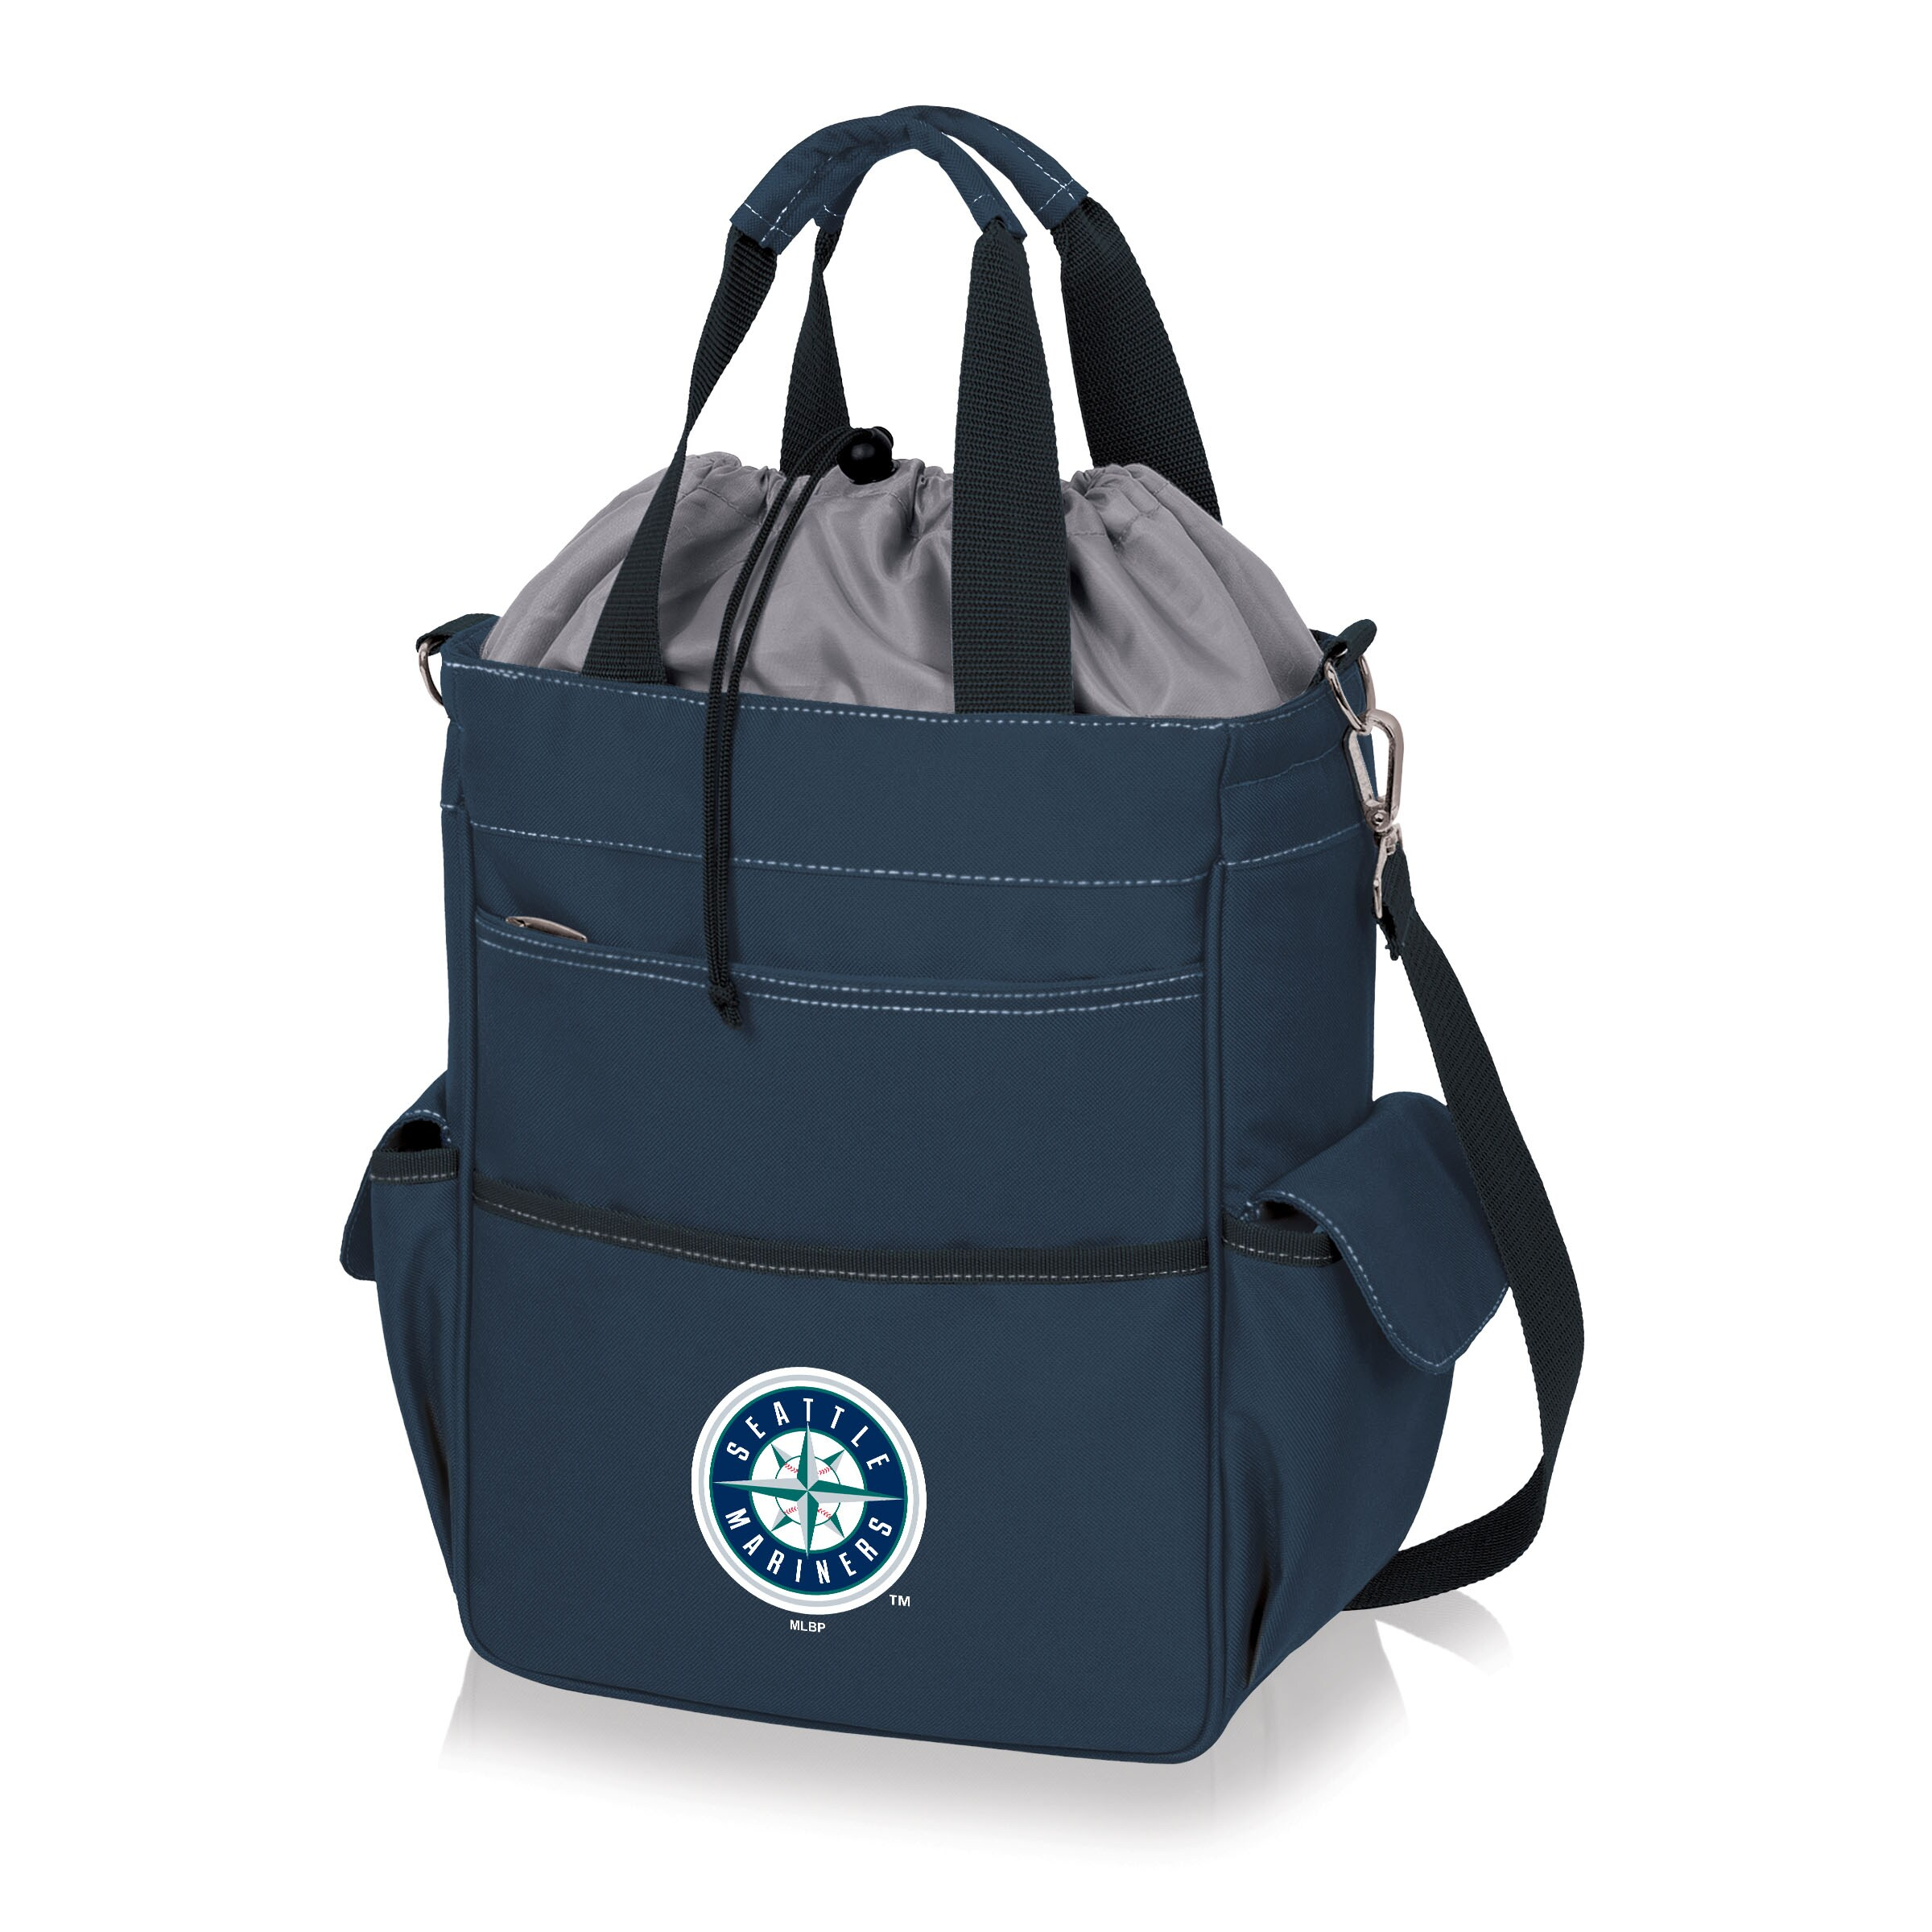 Seattle Mariners Activo Cooler Tote - Navy